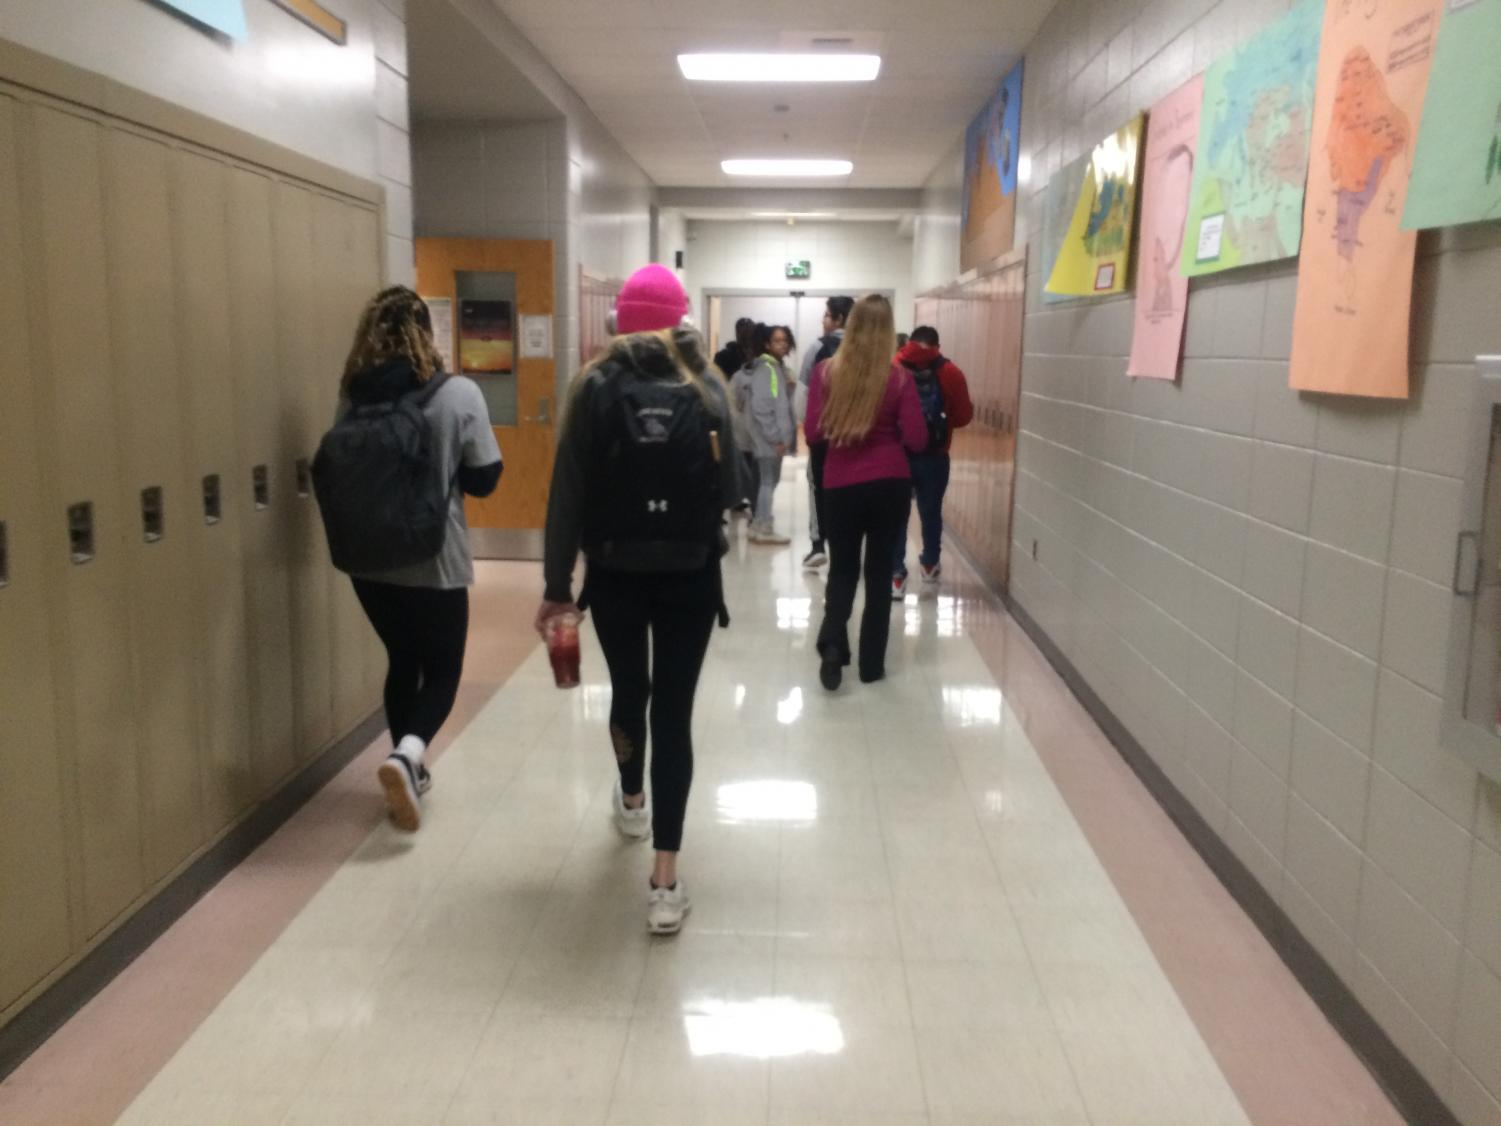 LRHS students utilizing the new dress code policy. Photo courtesy of Iman Ahmed.